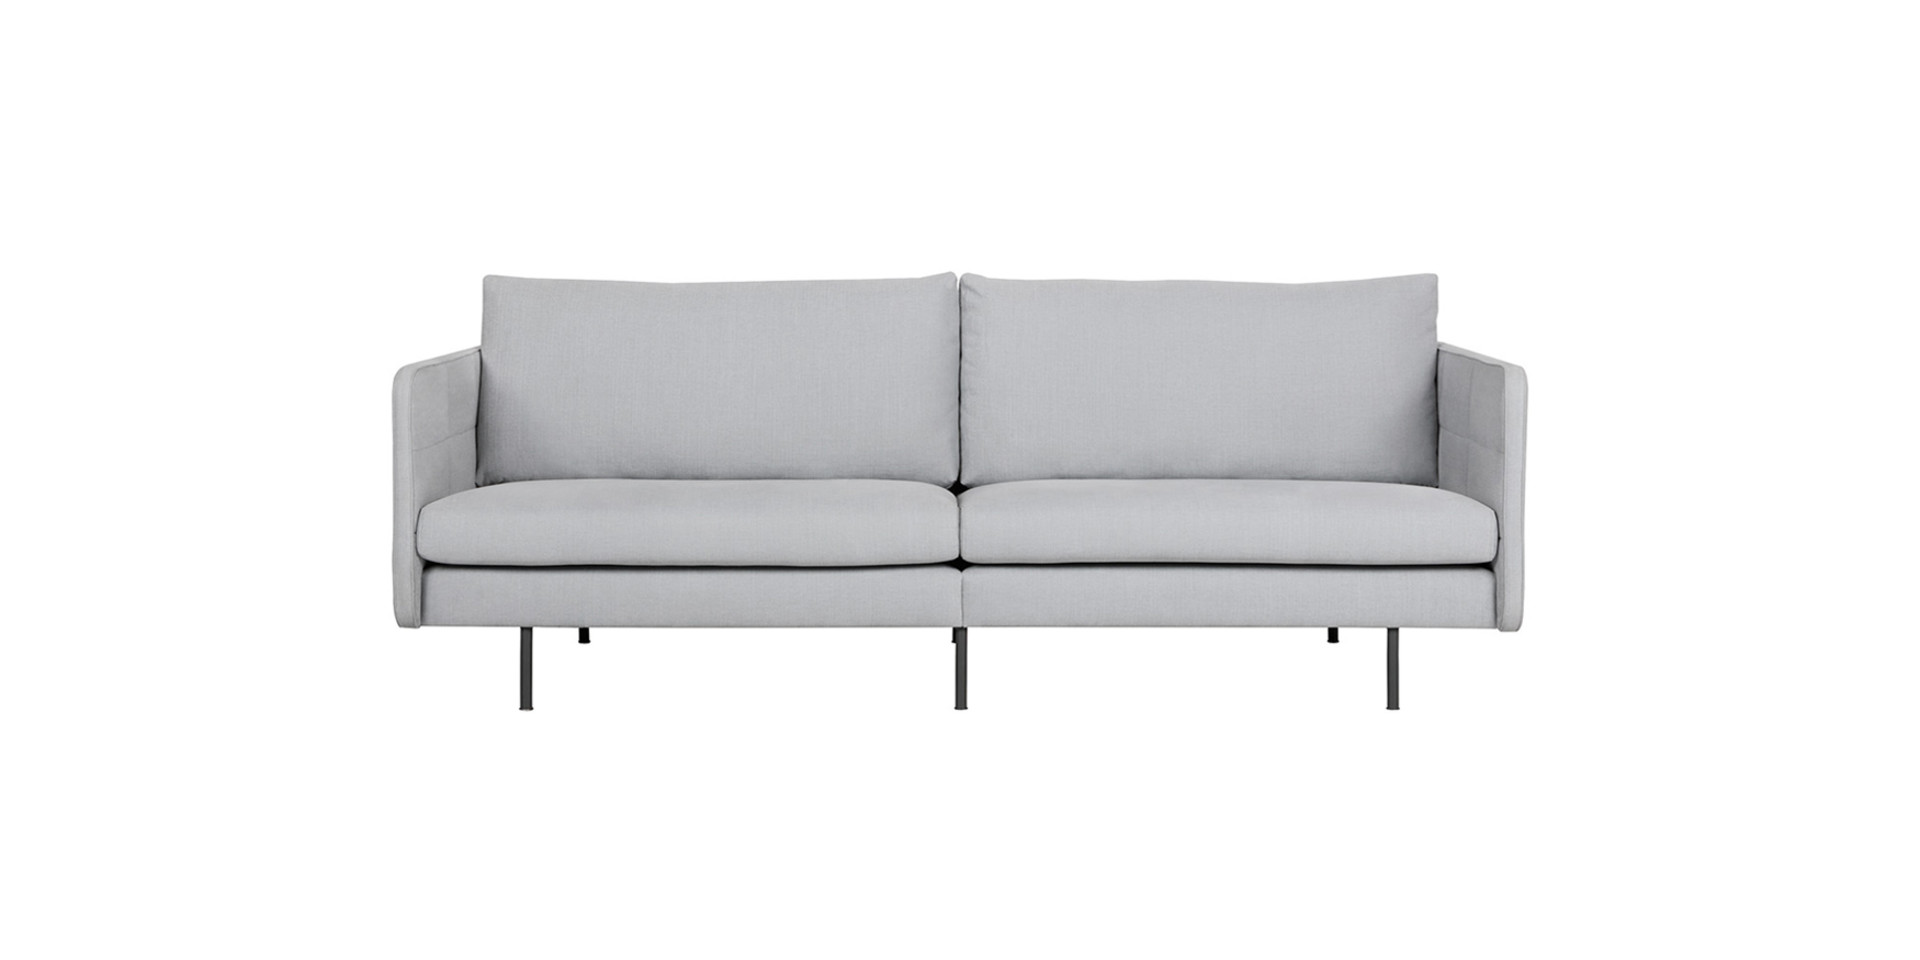 Sits Chic 3 places caleido1497_light_grey_1